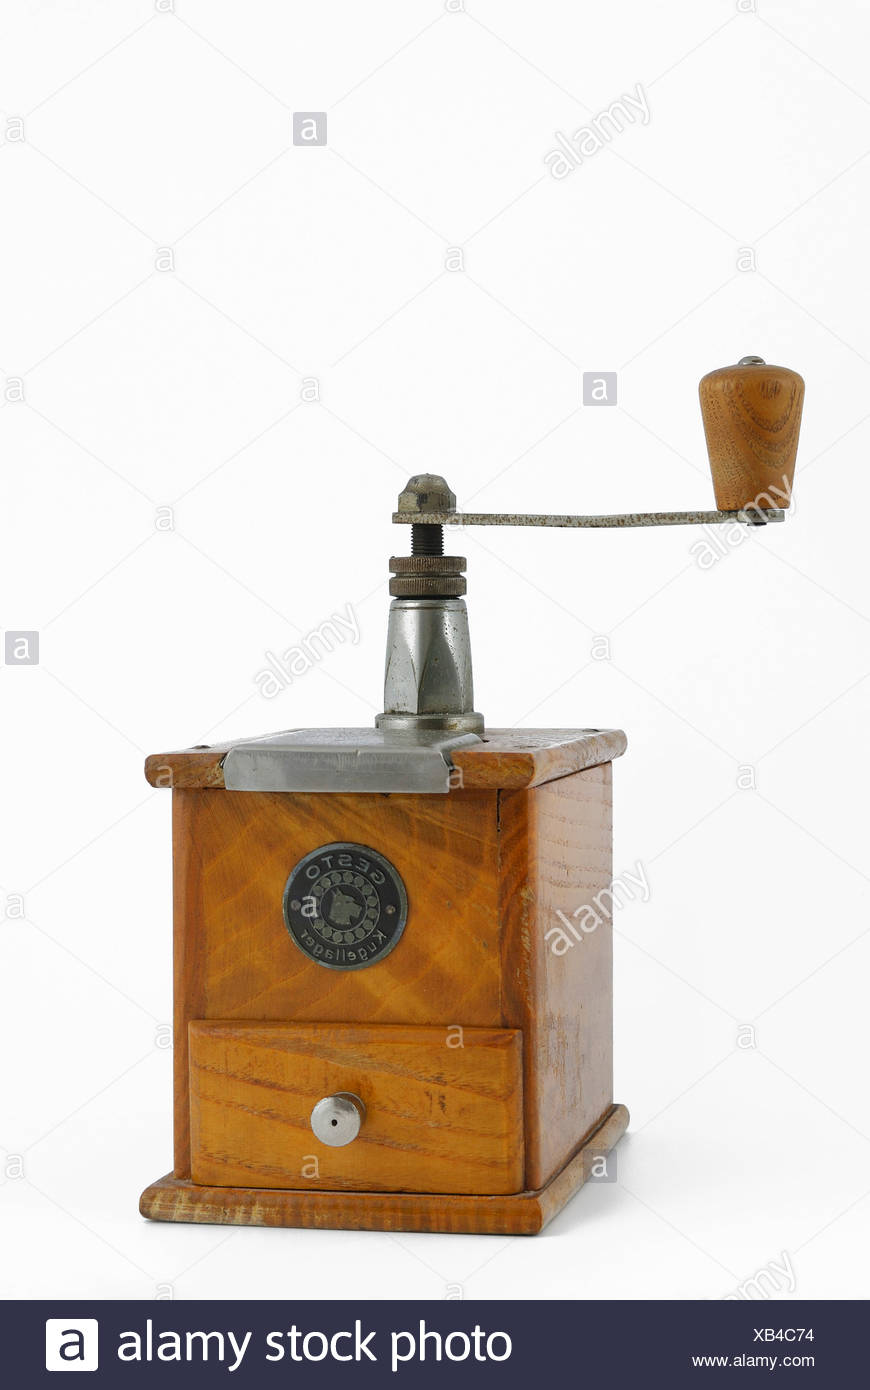 Antique manual coffee mill - Stock Image